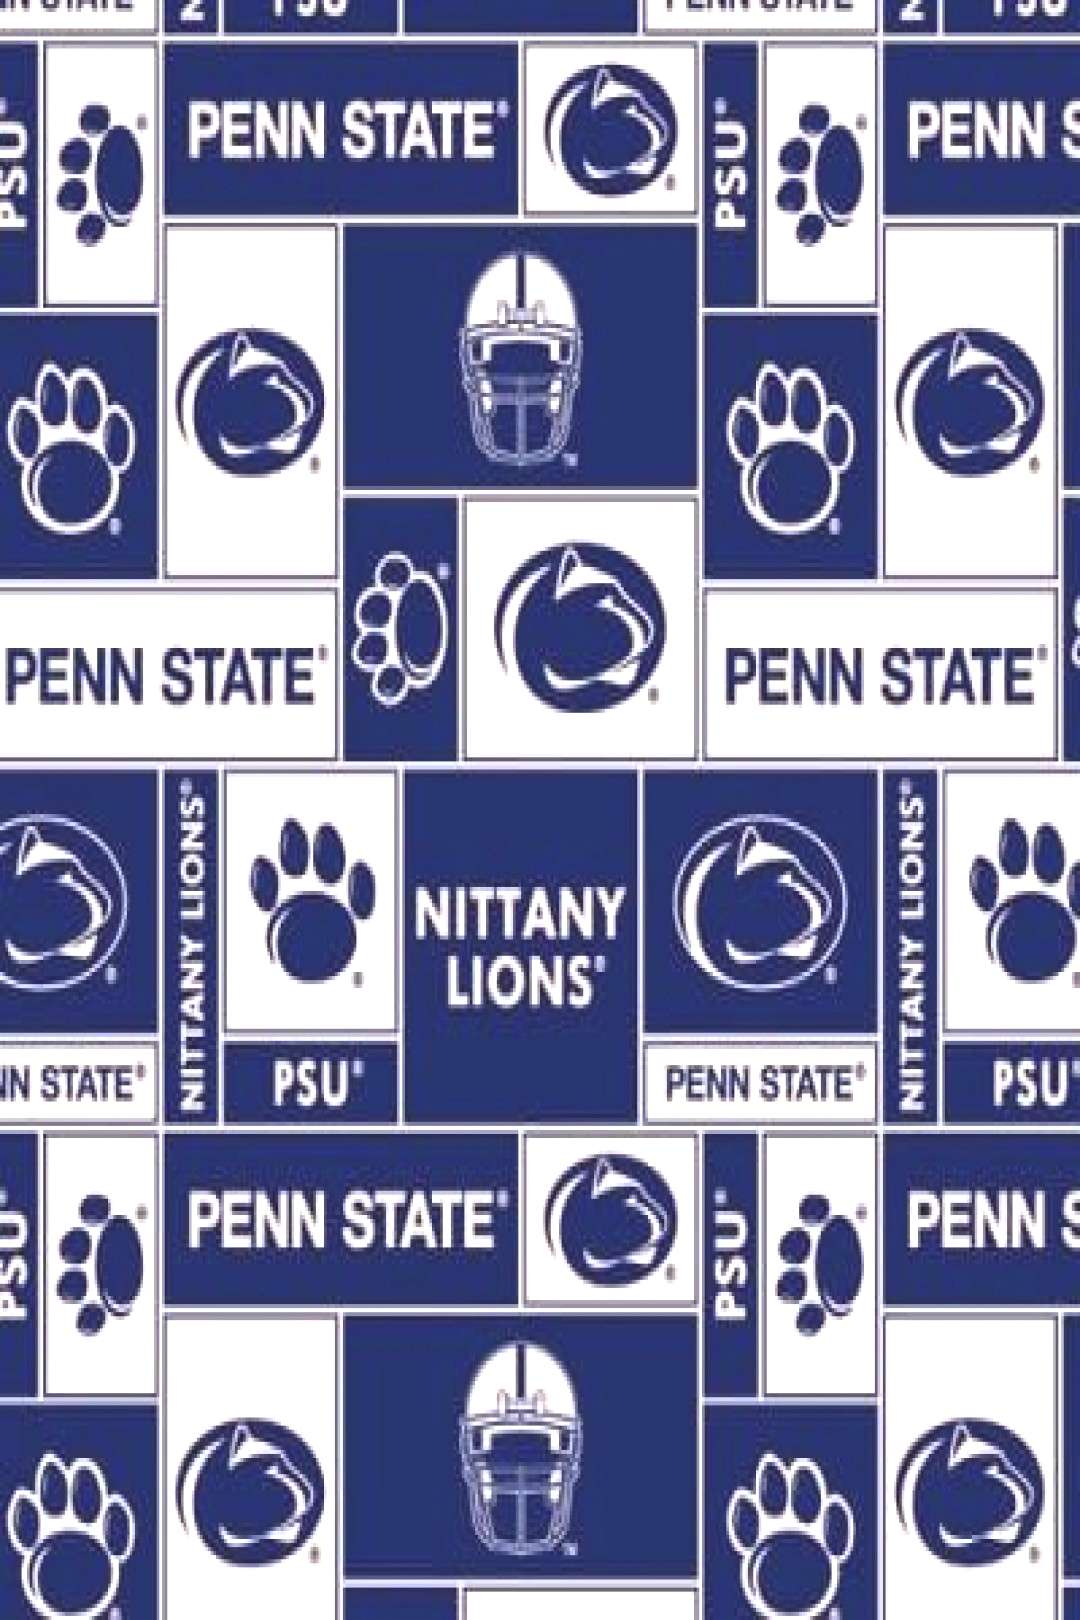 CUSTOM -- Greek T-Shirt with Double Fabric Letters (Penn State)  $23.45  Be sure to check out our s